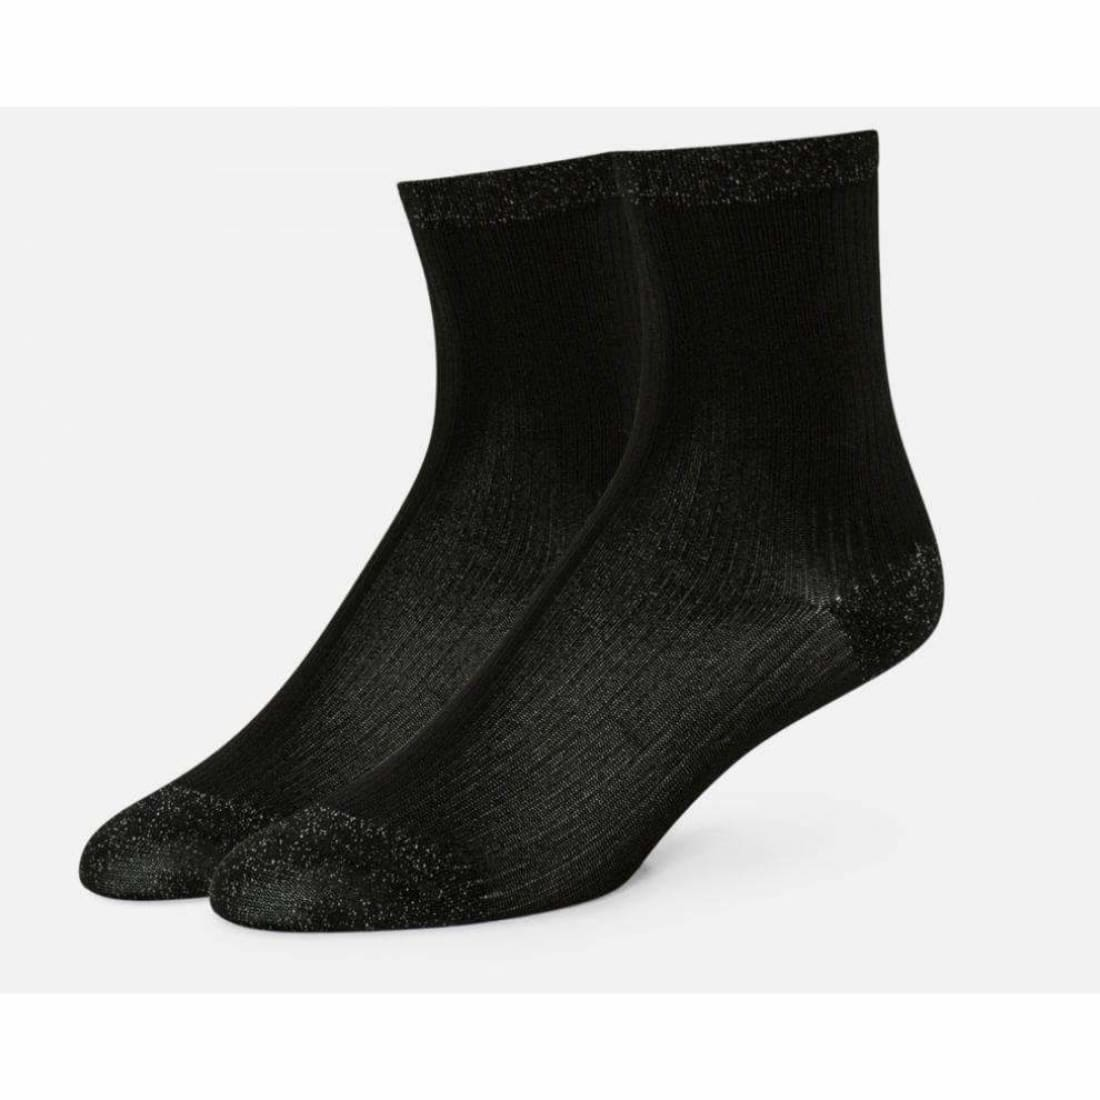 B.ella Womens Starr Sparkle Ankle Sock Made In Usa One Size / Black Socks